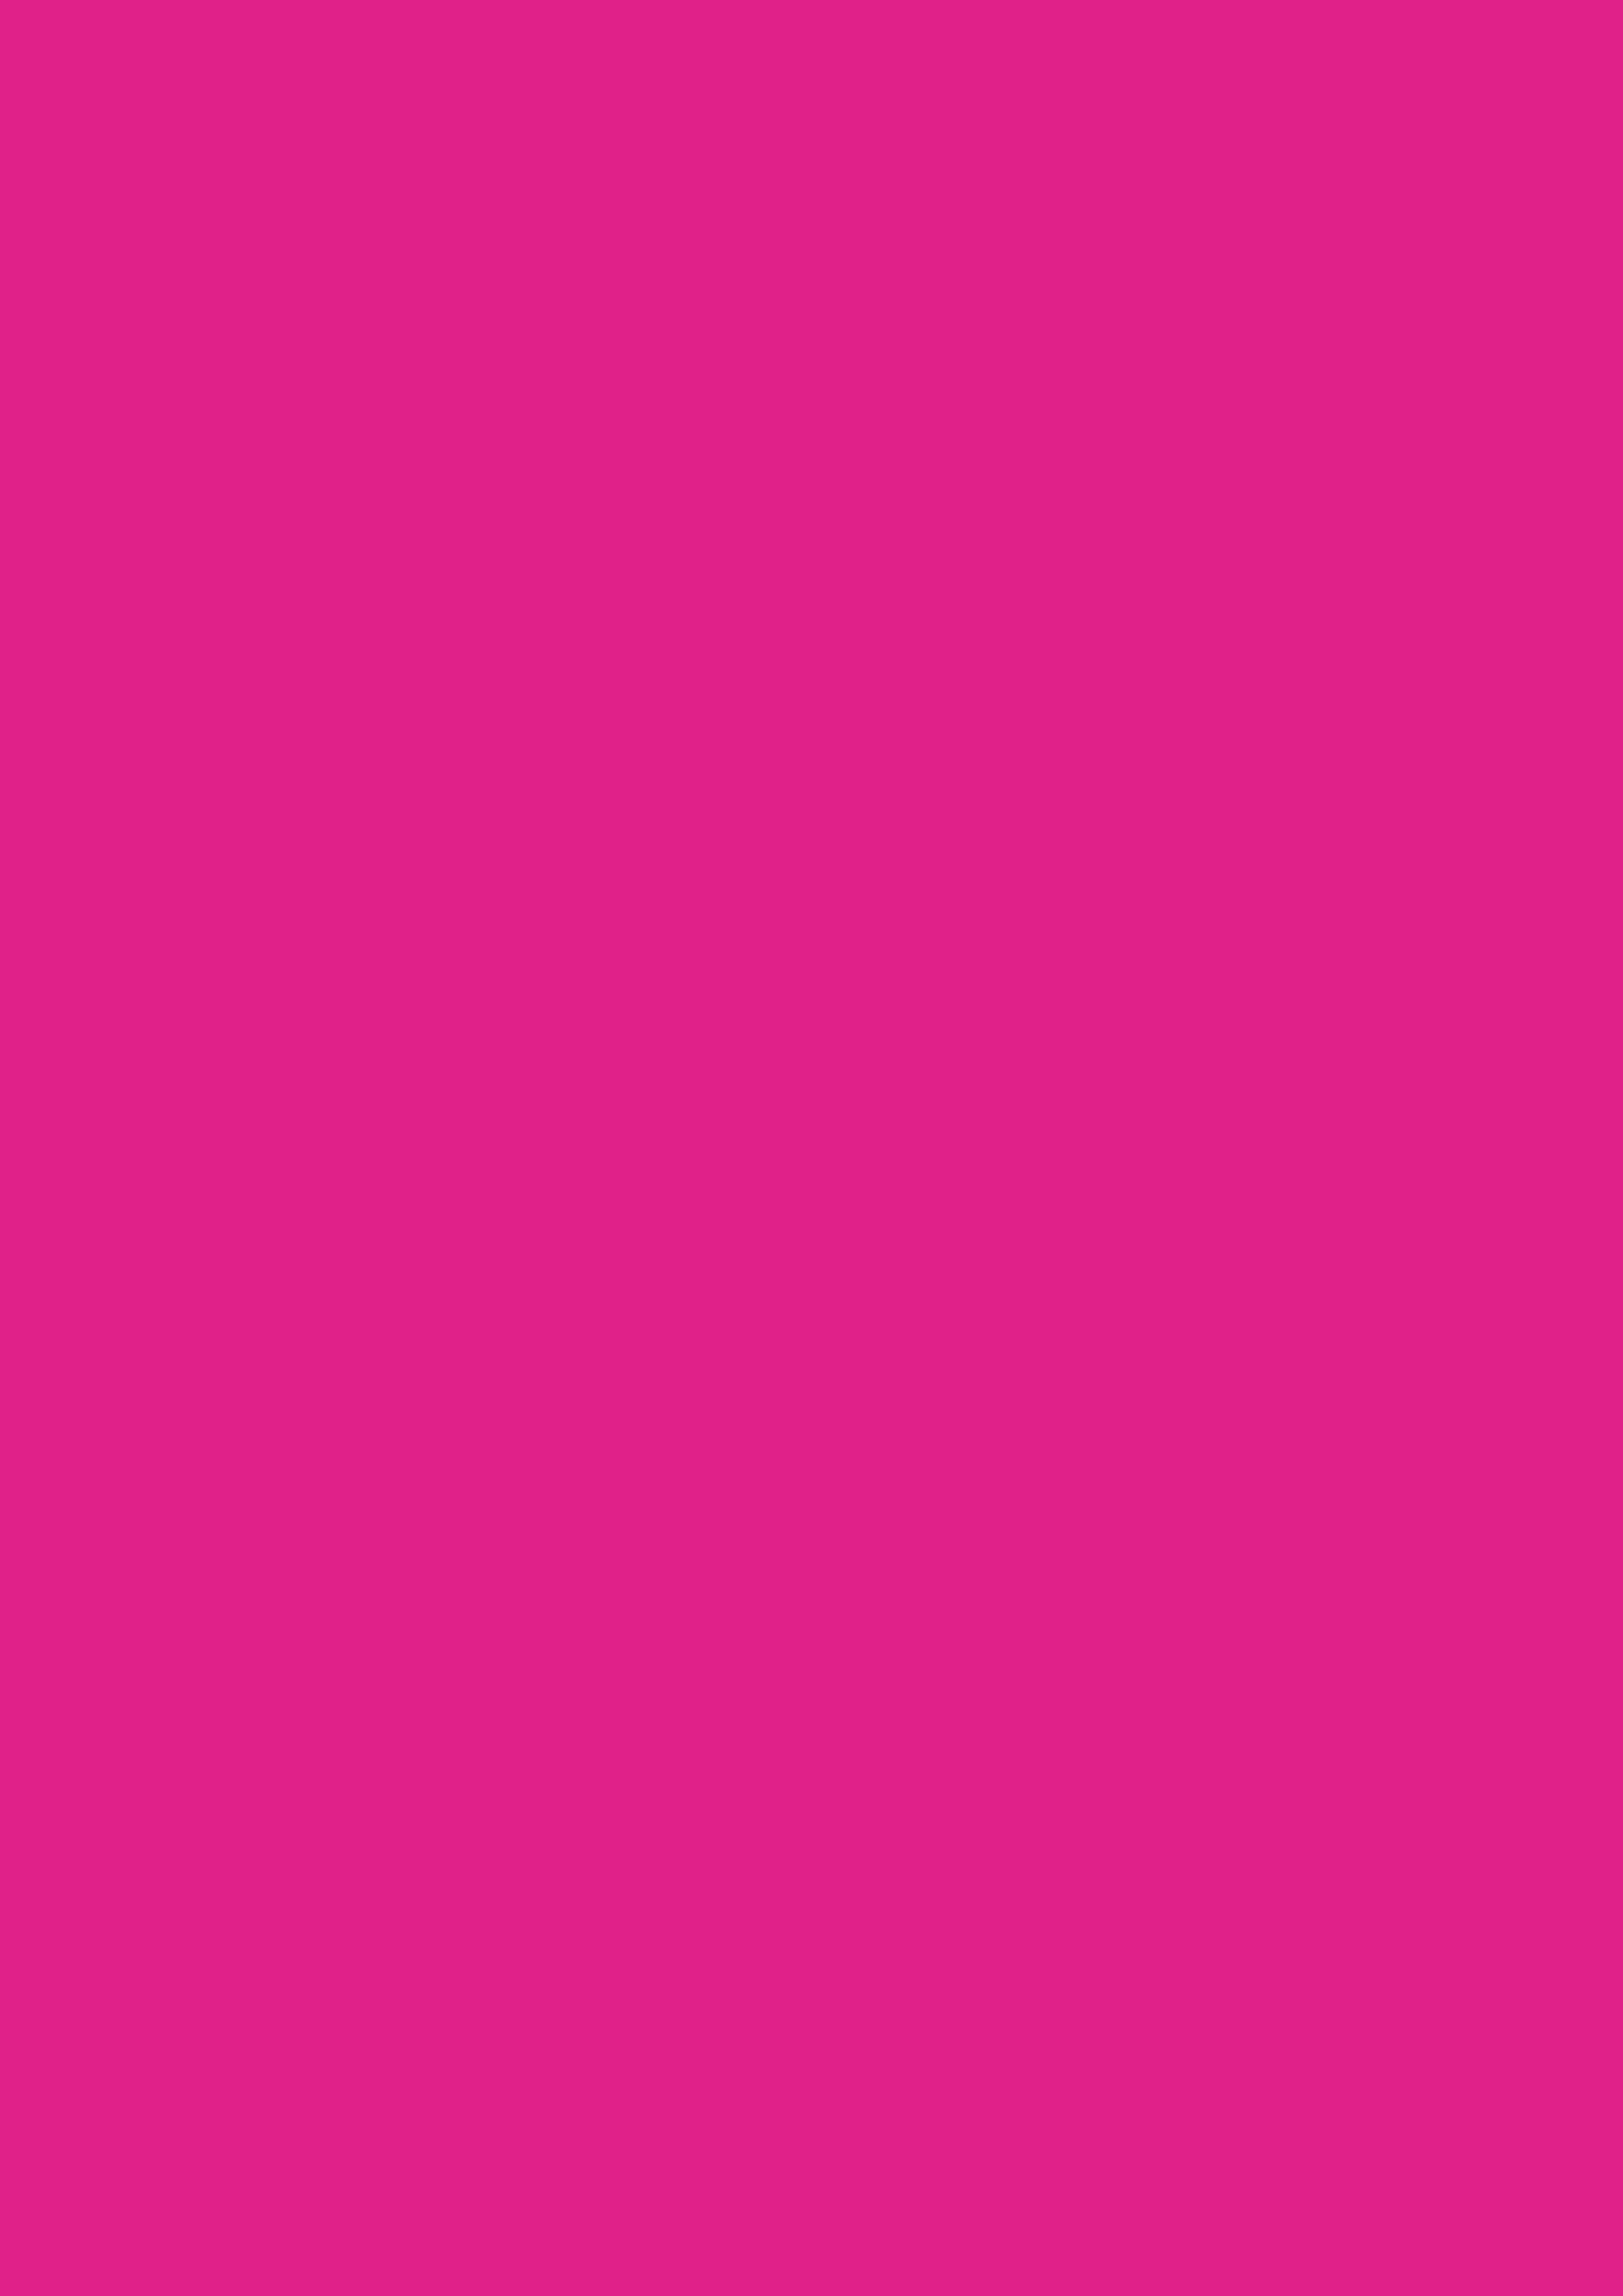 2480x3508 Barbie Pink Solid Color Background